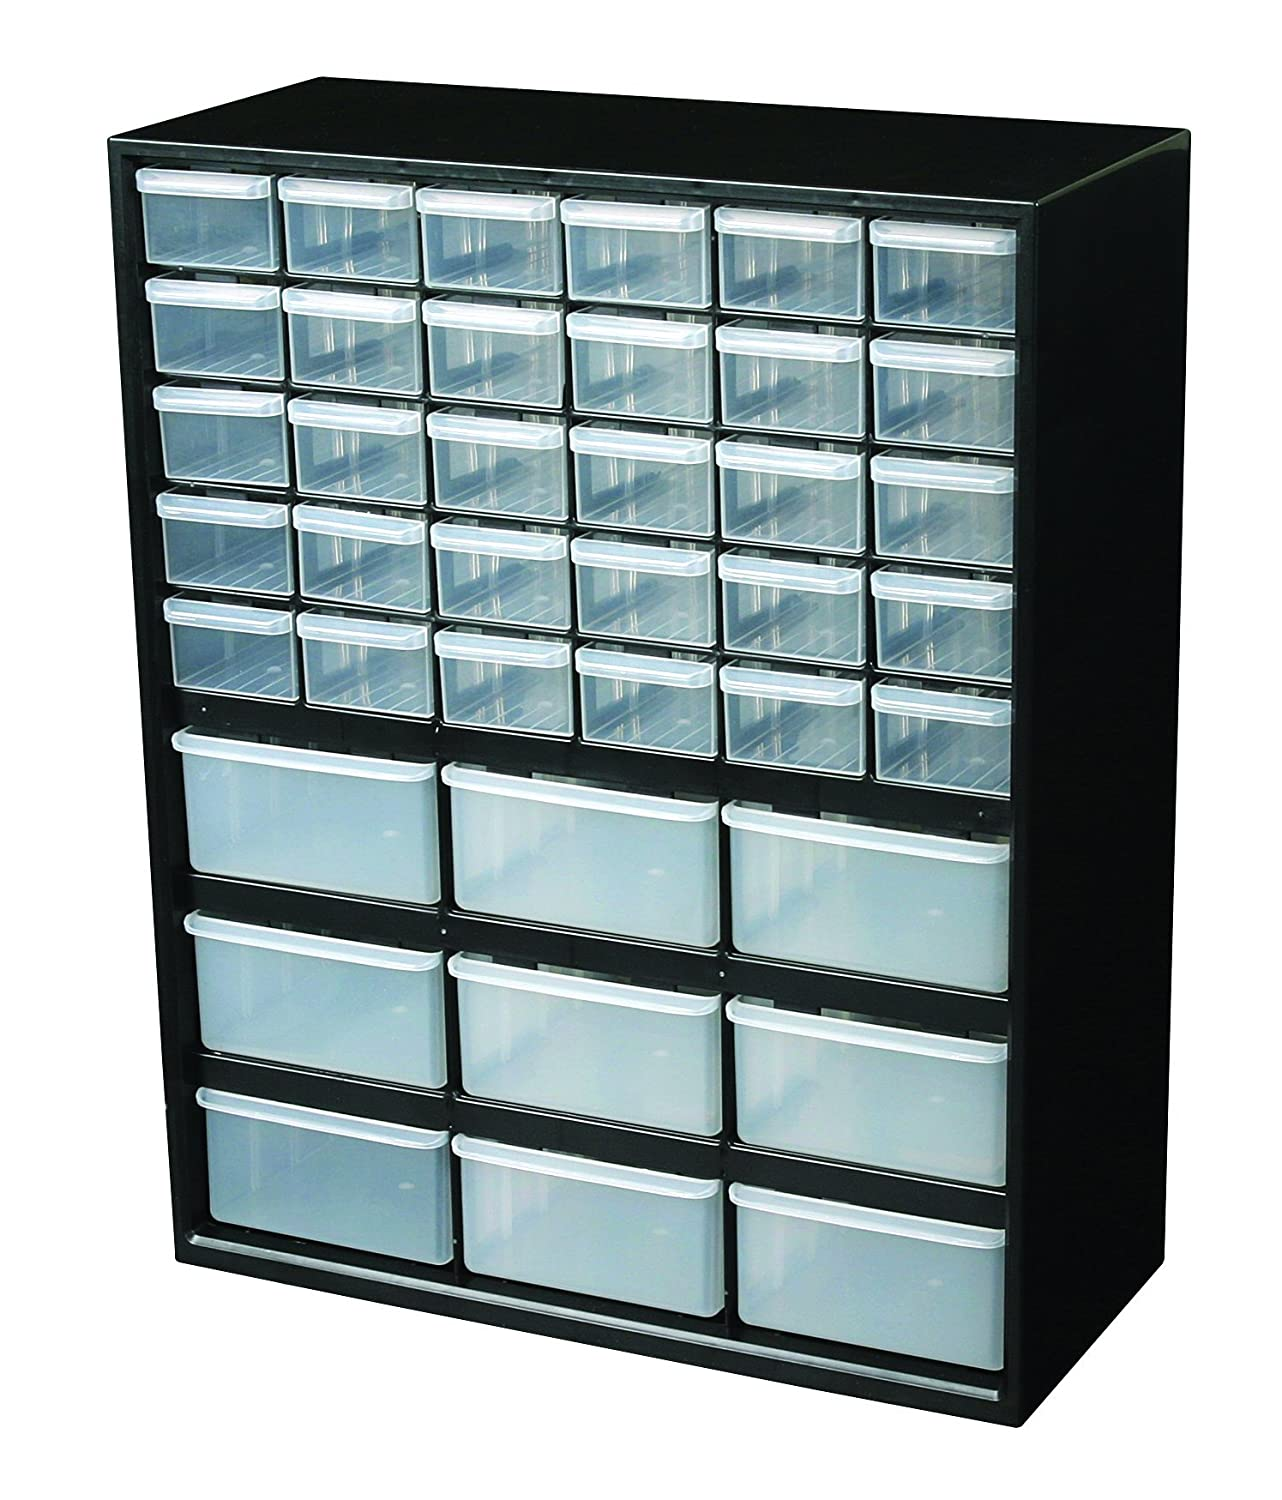 Amazon.com: Flambeau 6576ND Parts Storage Drawer, Hardware And Craft Cabinet  With 39 Drawers: Home Improvement